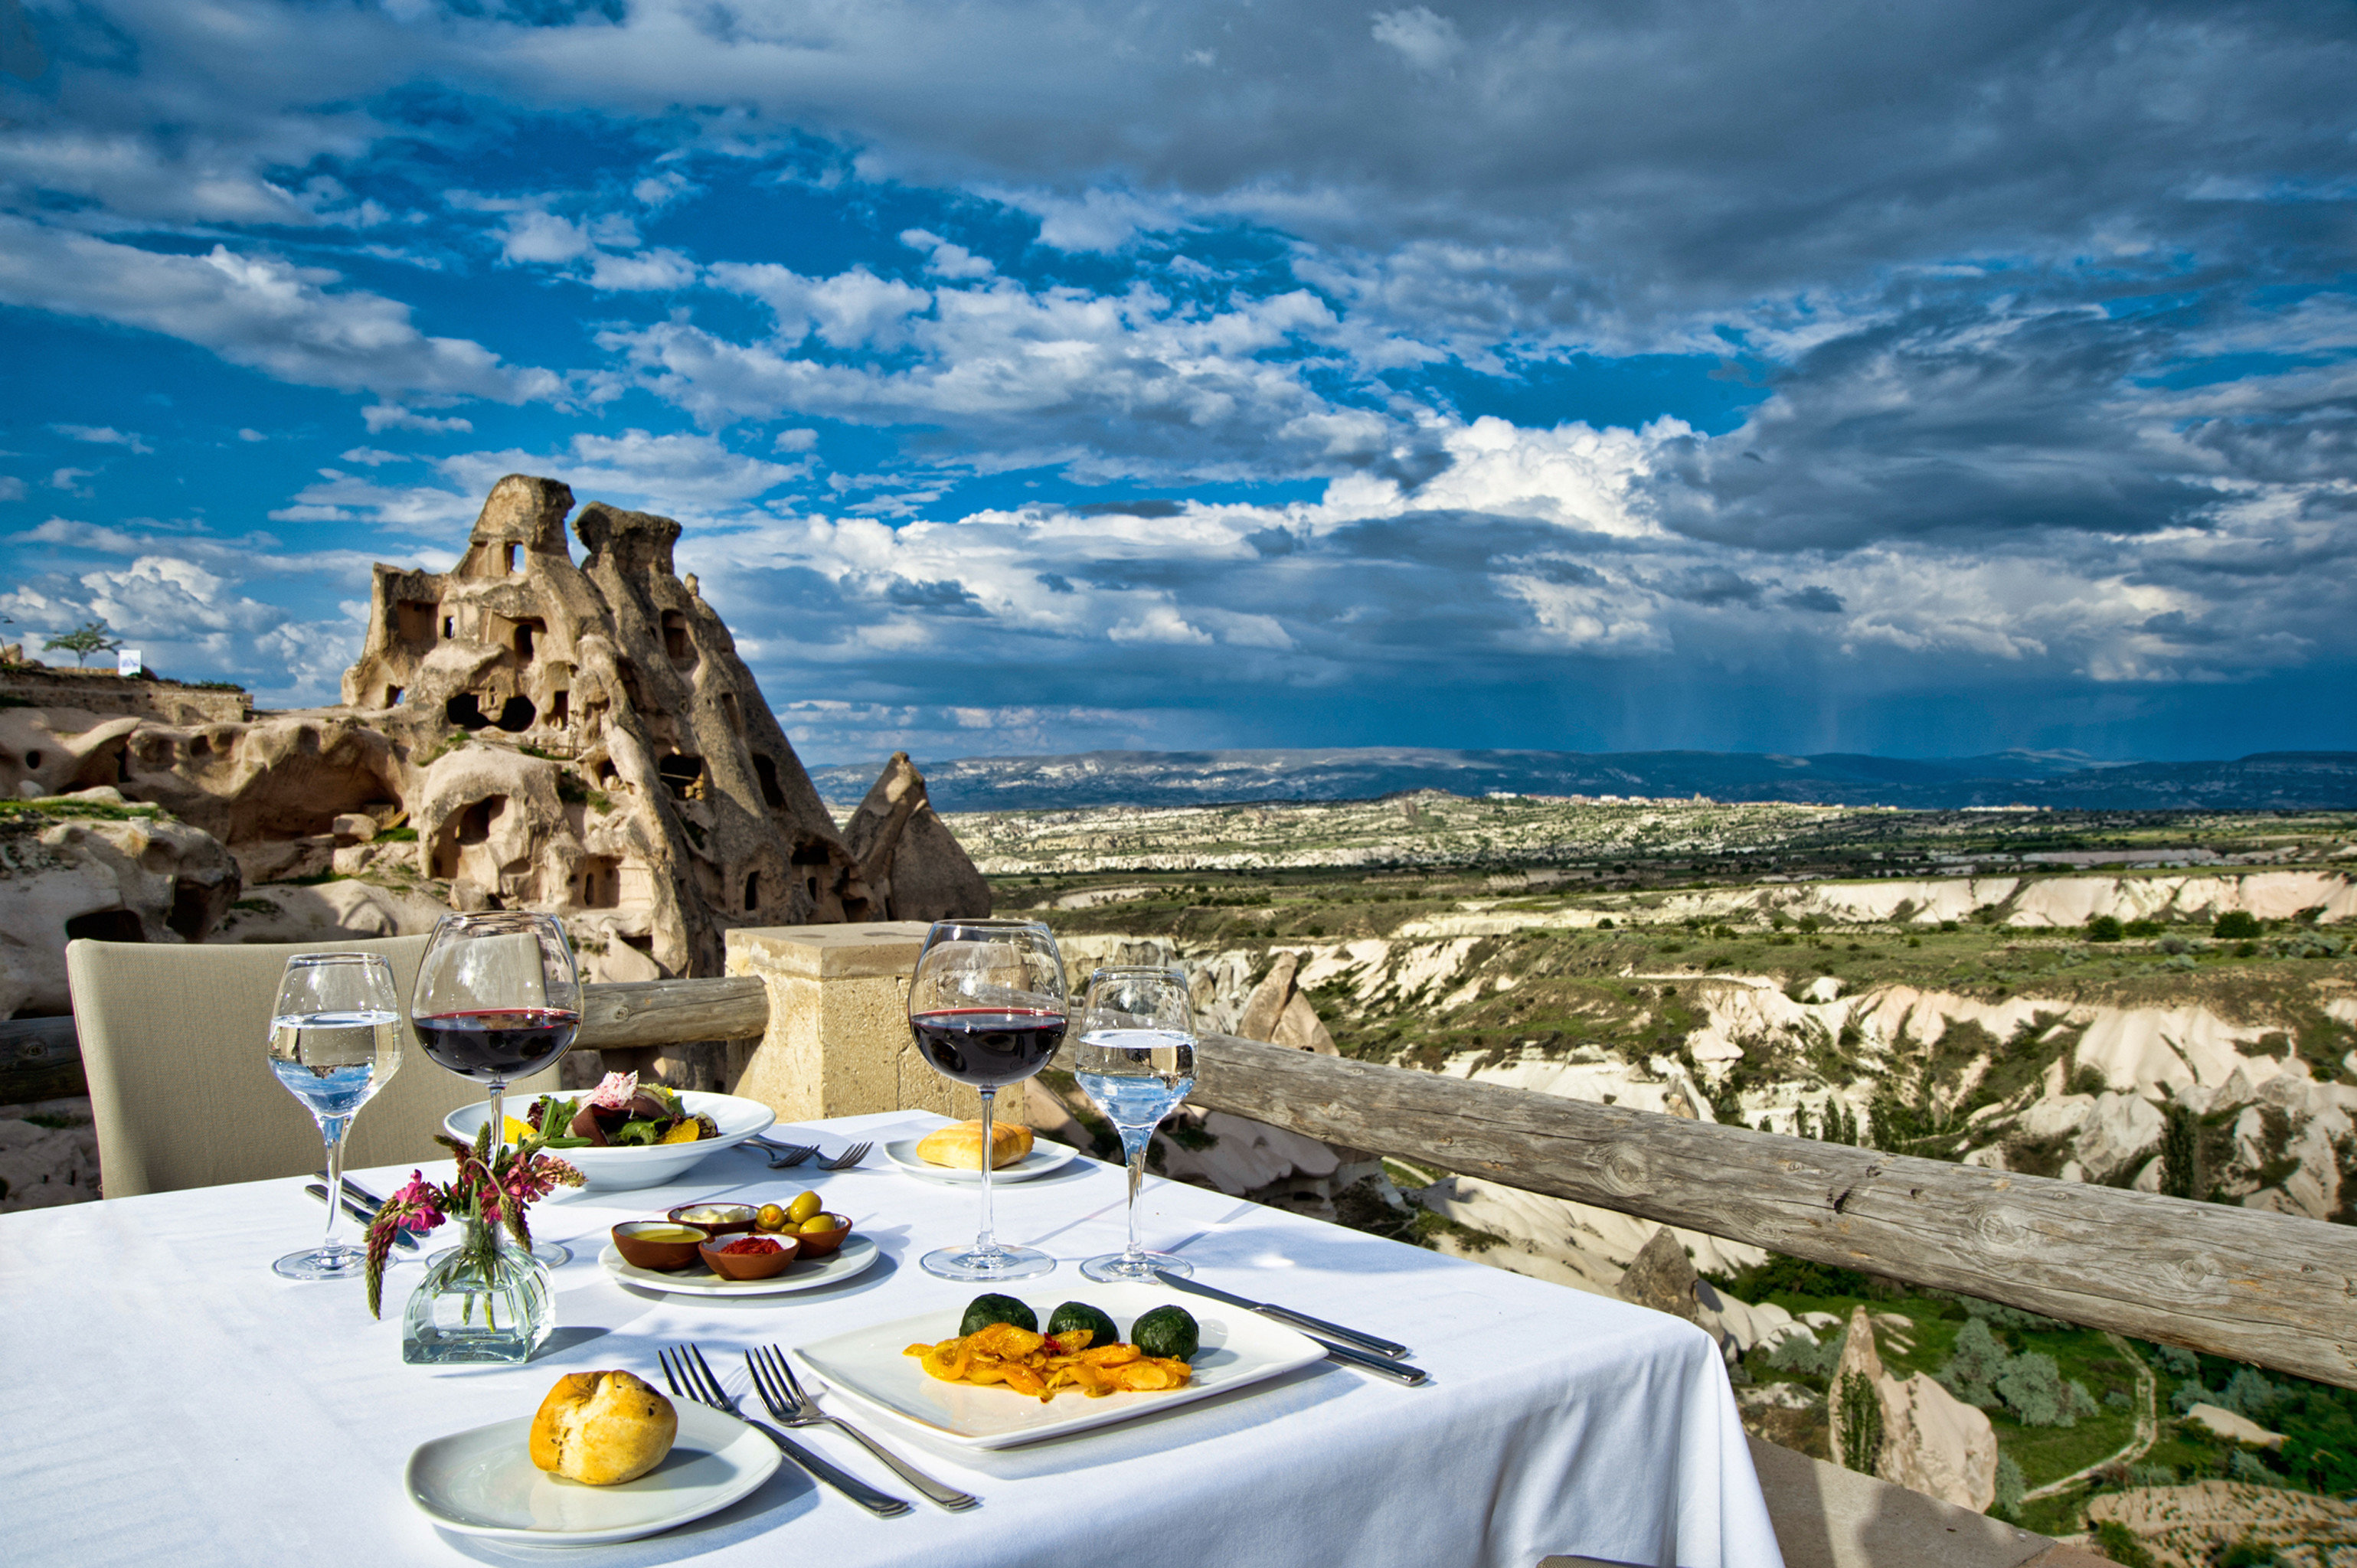 Dining Drink Eat Eco Luxury Mountains Outdoors Resort Scenic views sky Sea